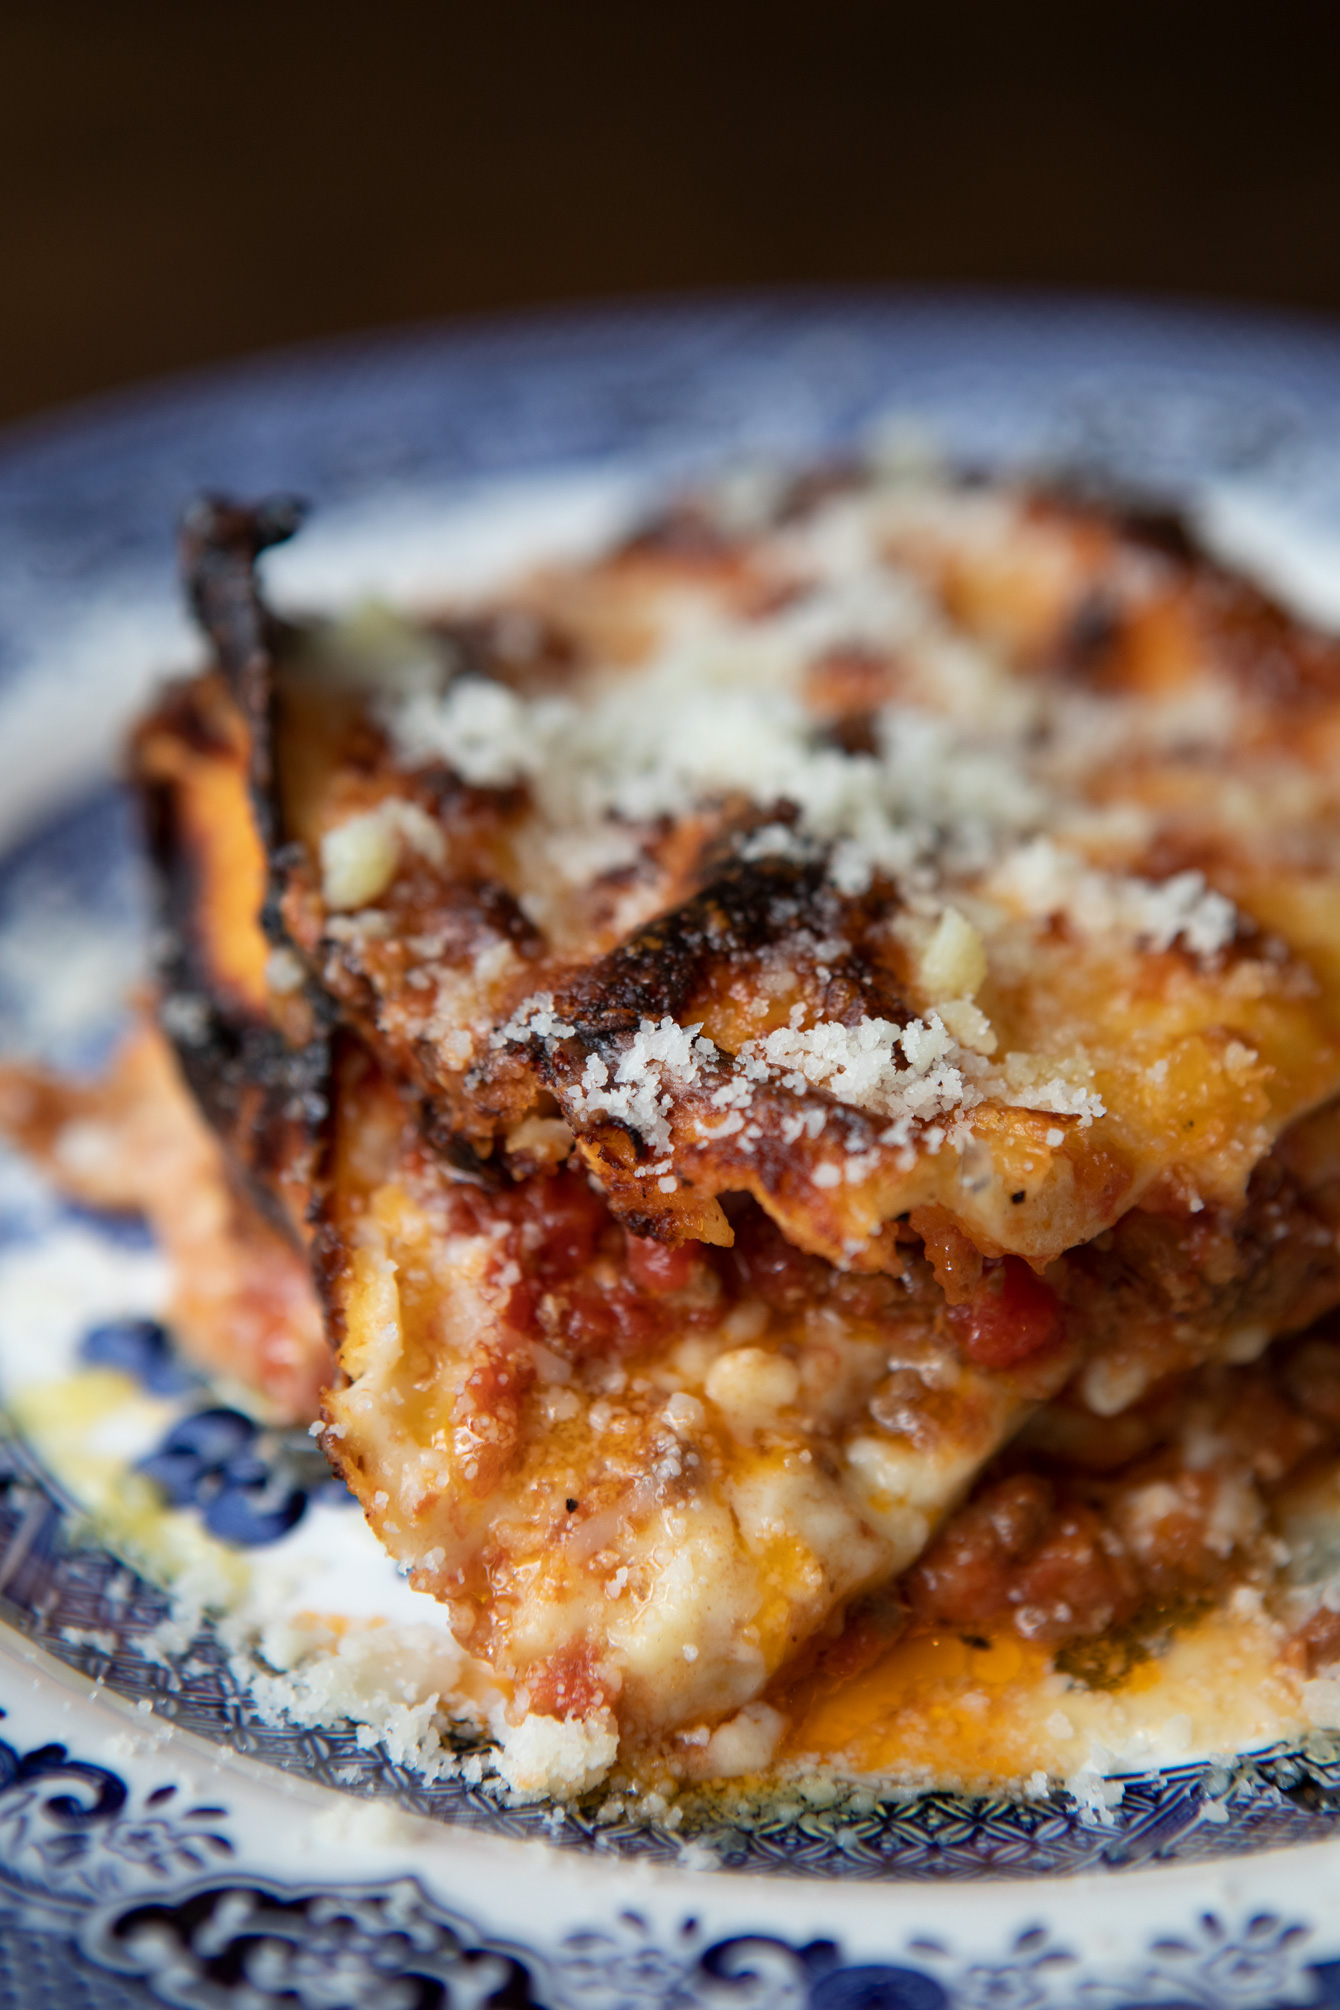 lardo-london-italian-restaurant-lamb-and-pork-ragu-lasagne